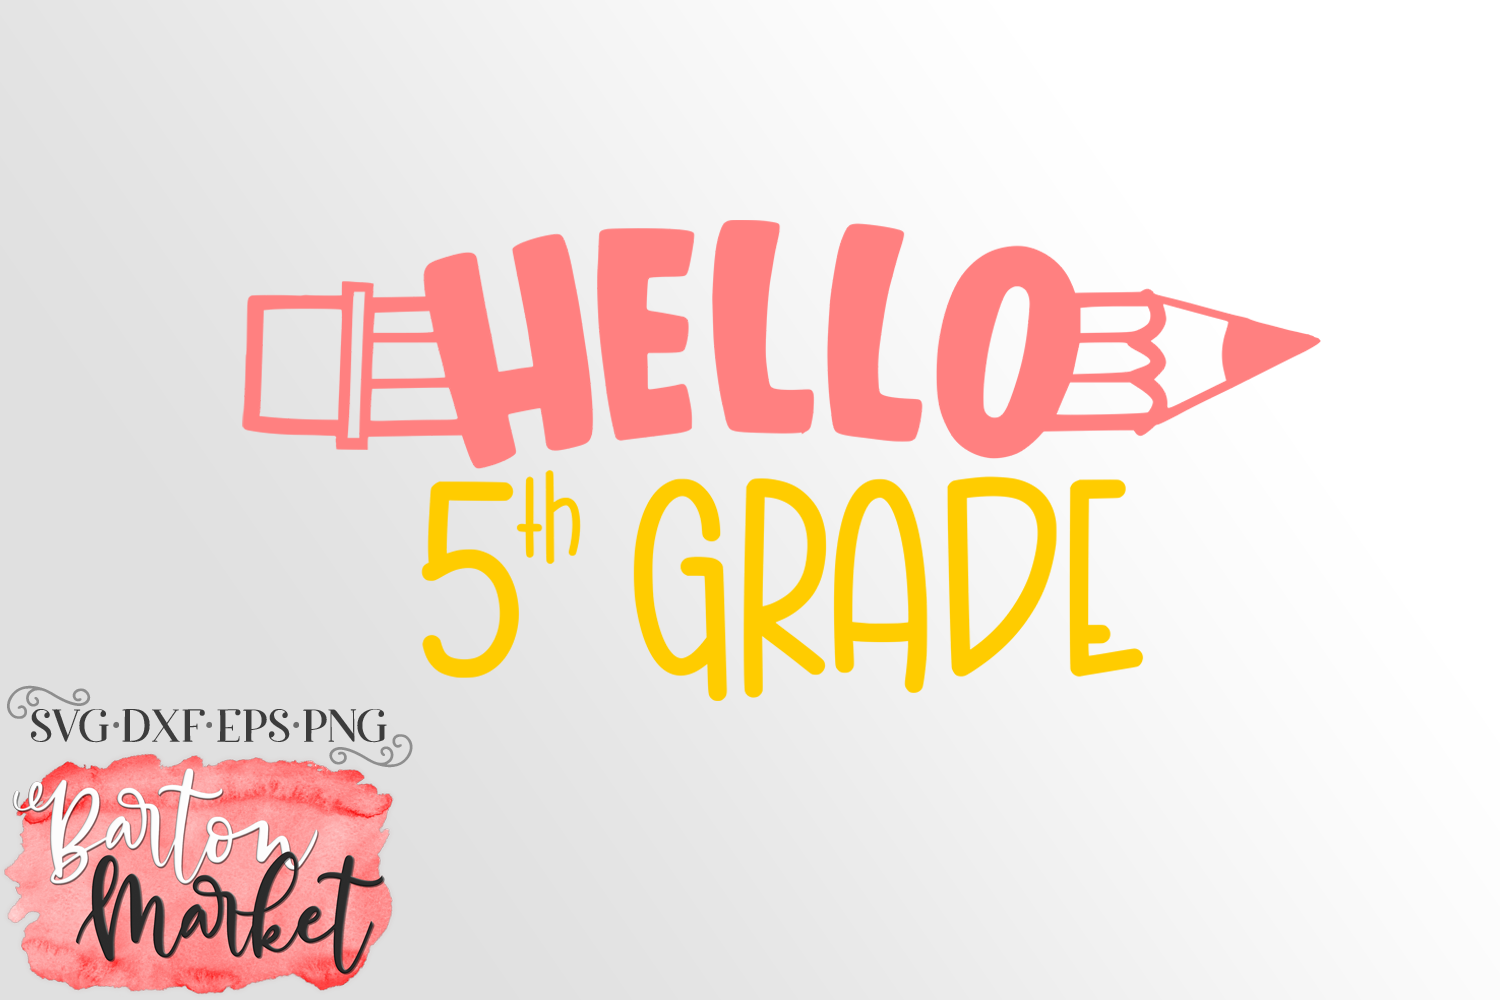 Hello 5th Grade SVG DXF EPS PNG example image 2